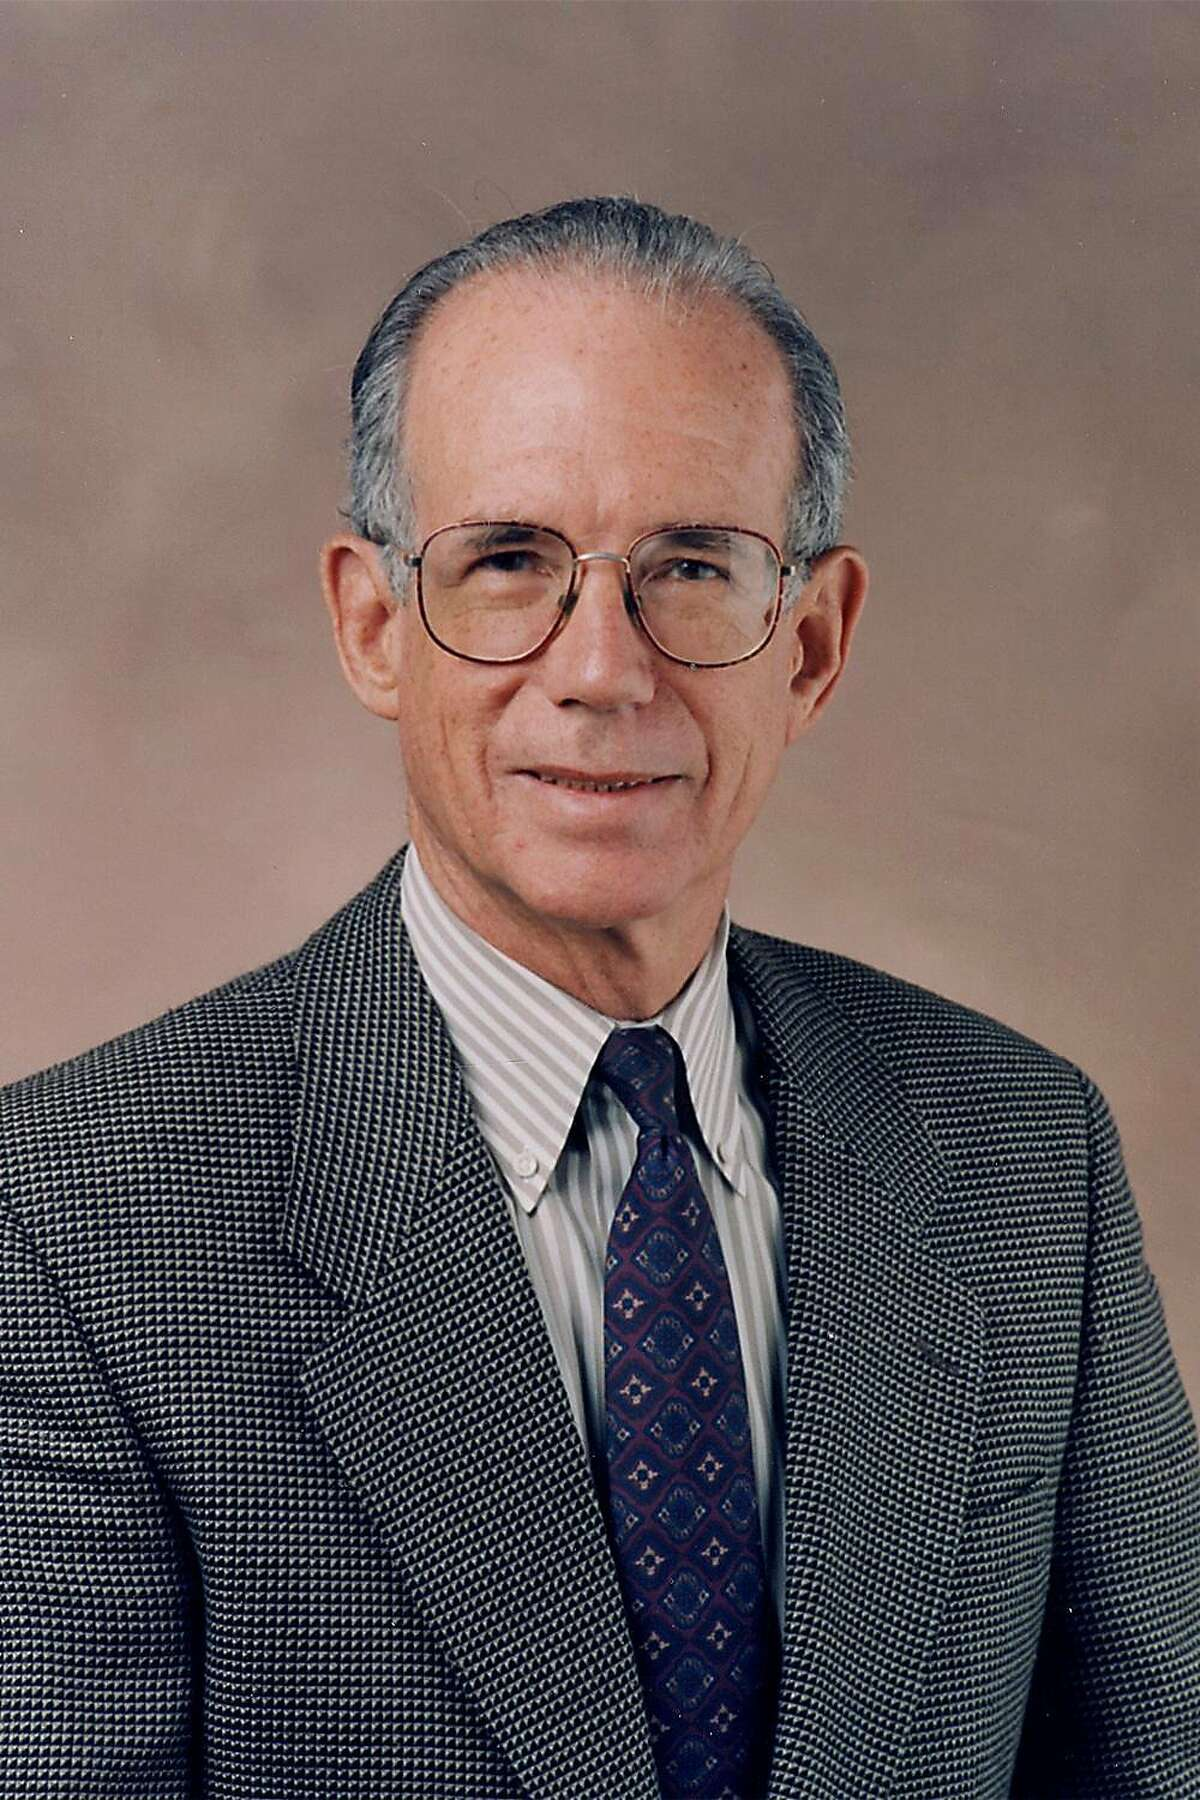 Donald Kennedy, former Stanford president and FDA commissioner, died Tuesday of COVID-19 at a Redwood City residential care home. He was 88. c. 2000 Donald Kennedy, president emeritus and Bing Professor of Environmental Science. Courtesy Stanford News Service